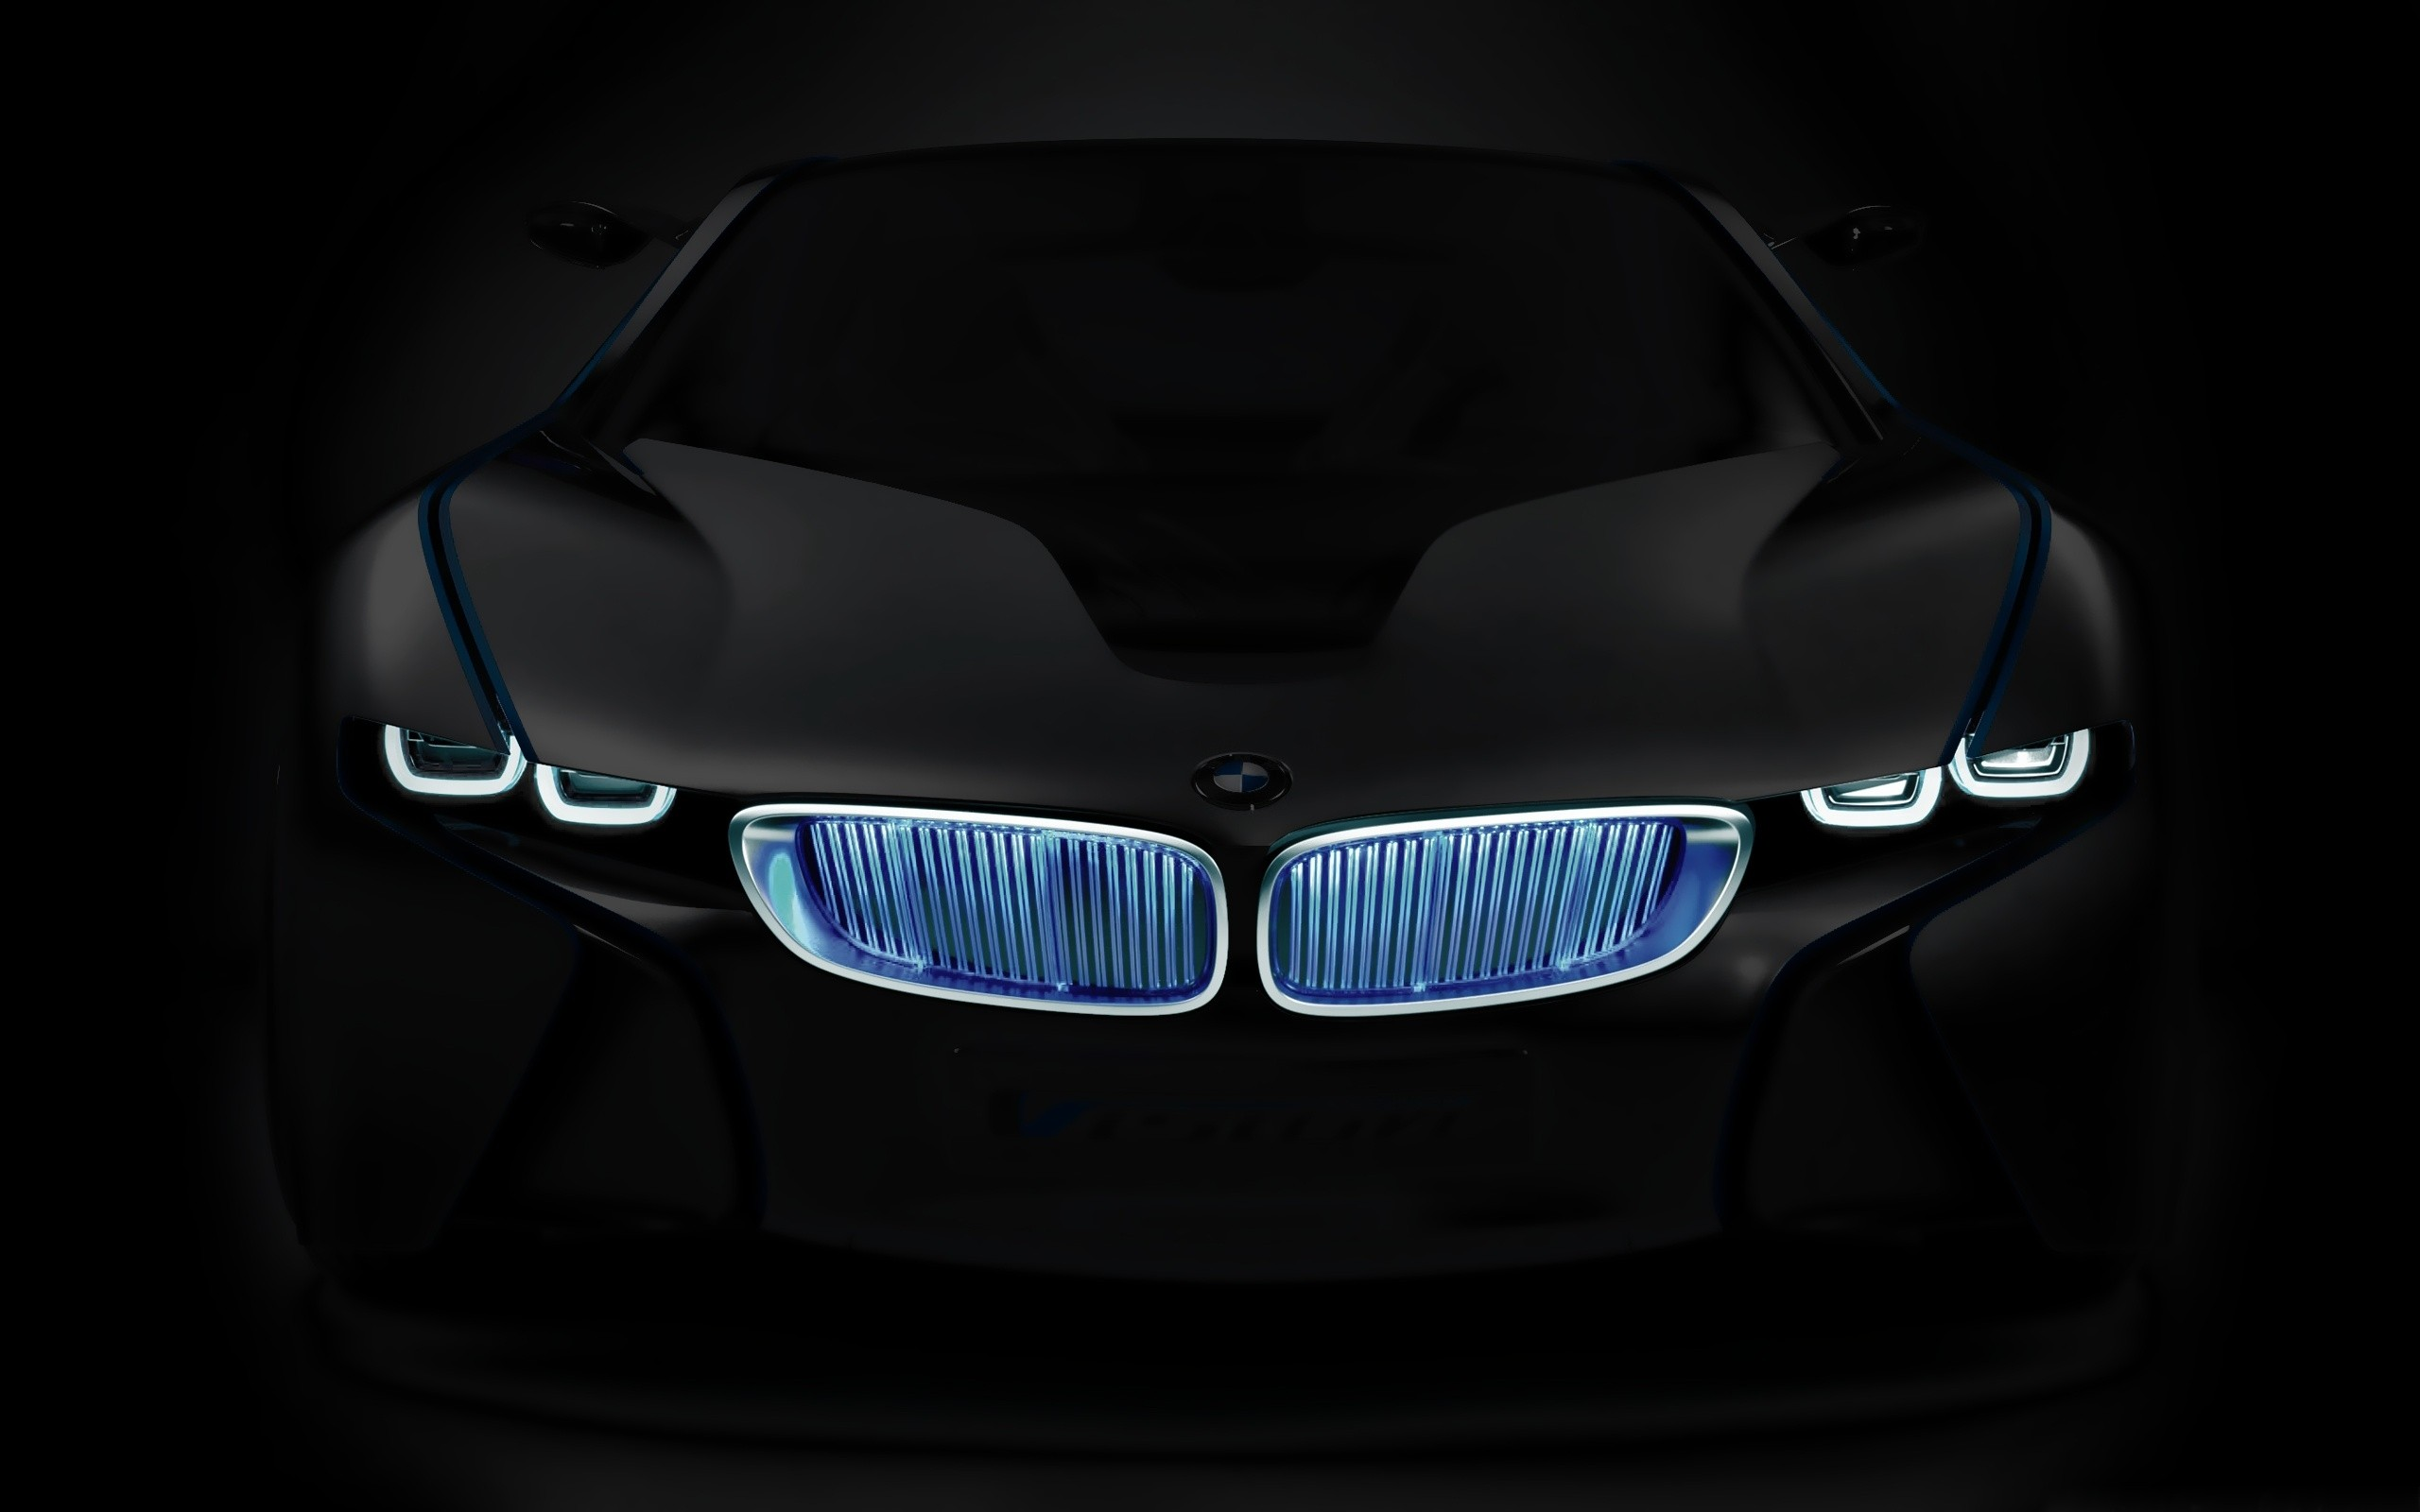 Full Hd Bmw Car Hd Wallpapers 1080p